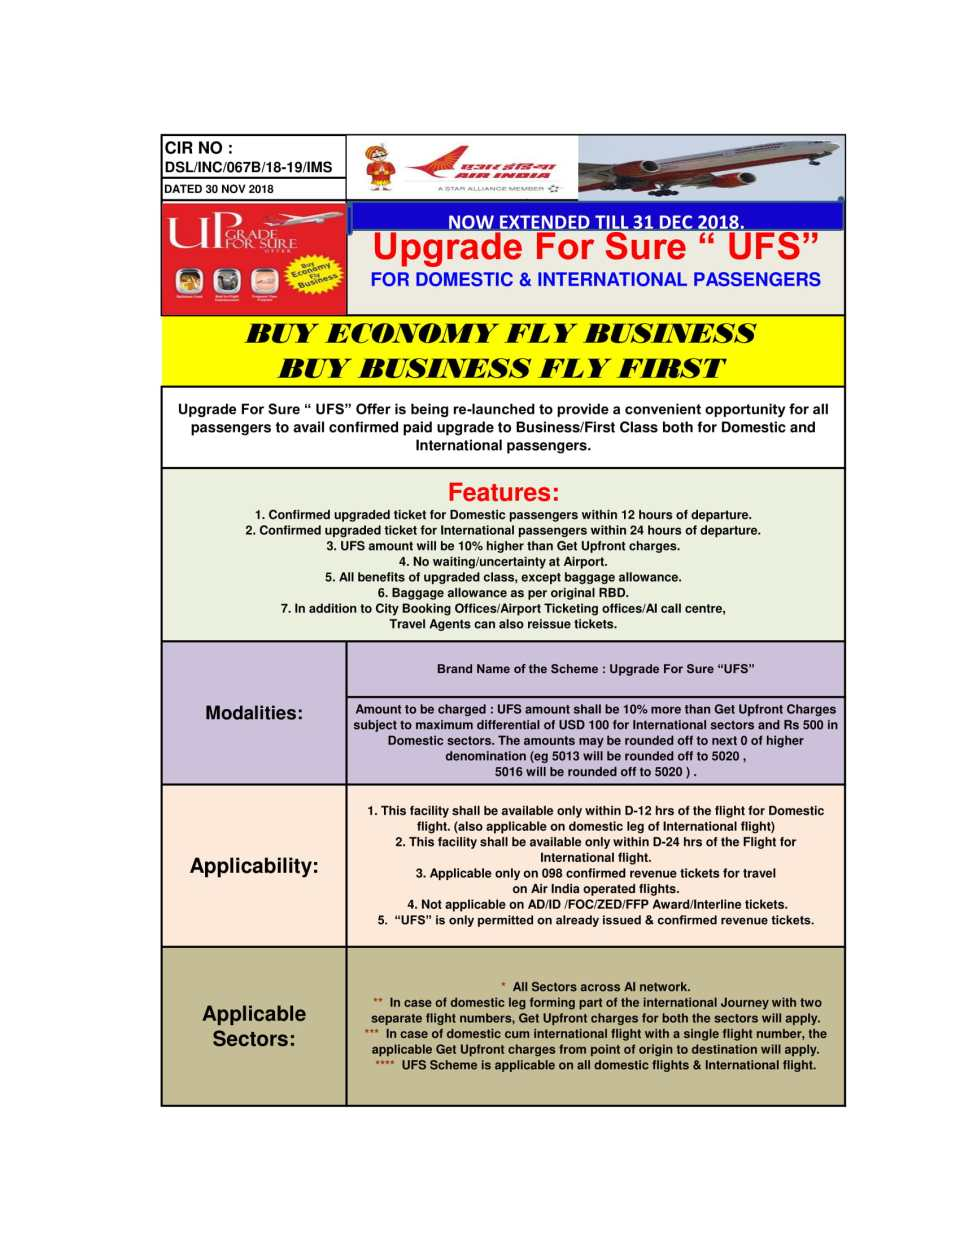 CIR NO 067B UPGRADE FOR SURE - UFS FOR DOMESTIC & INTERNATIONAL PASSENGERS EXTENDED pdf-1